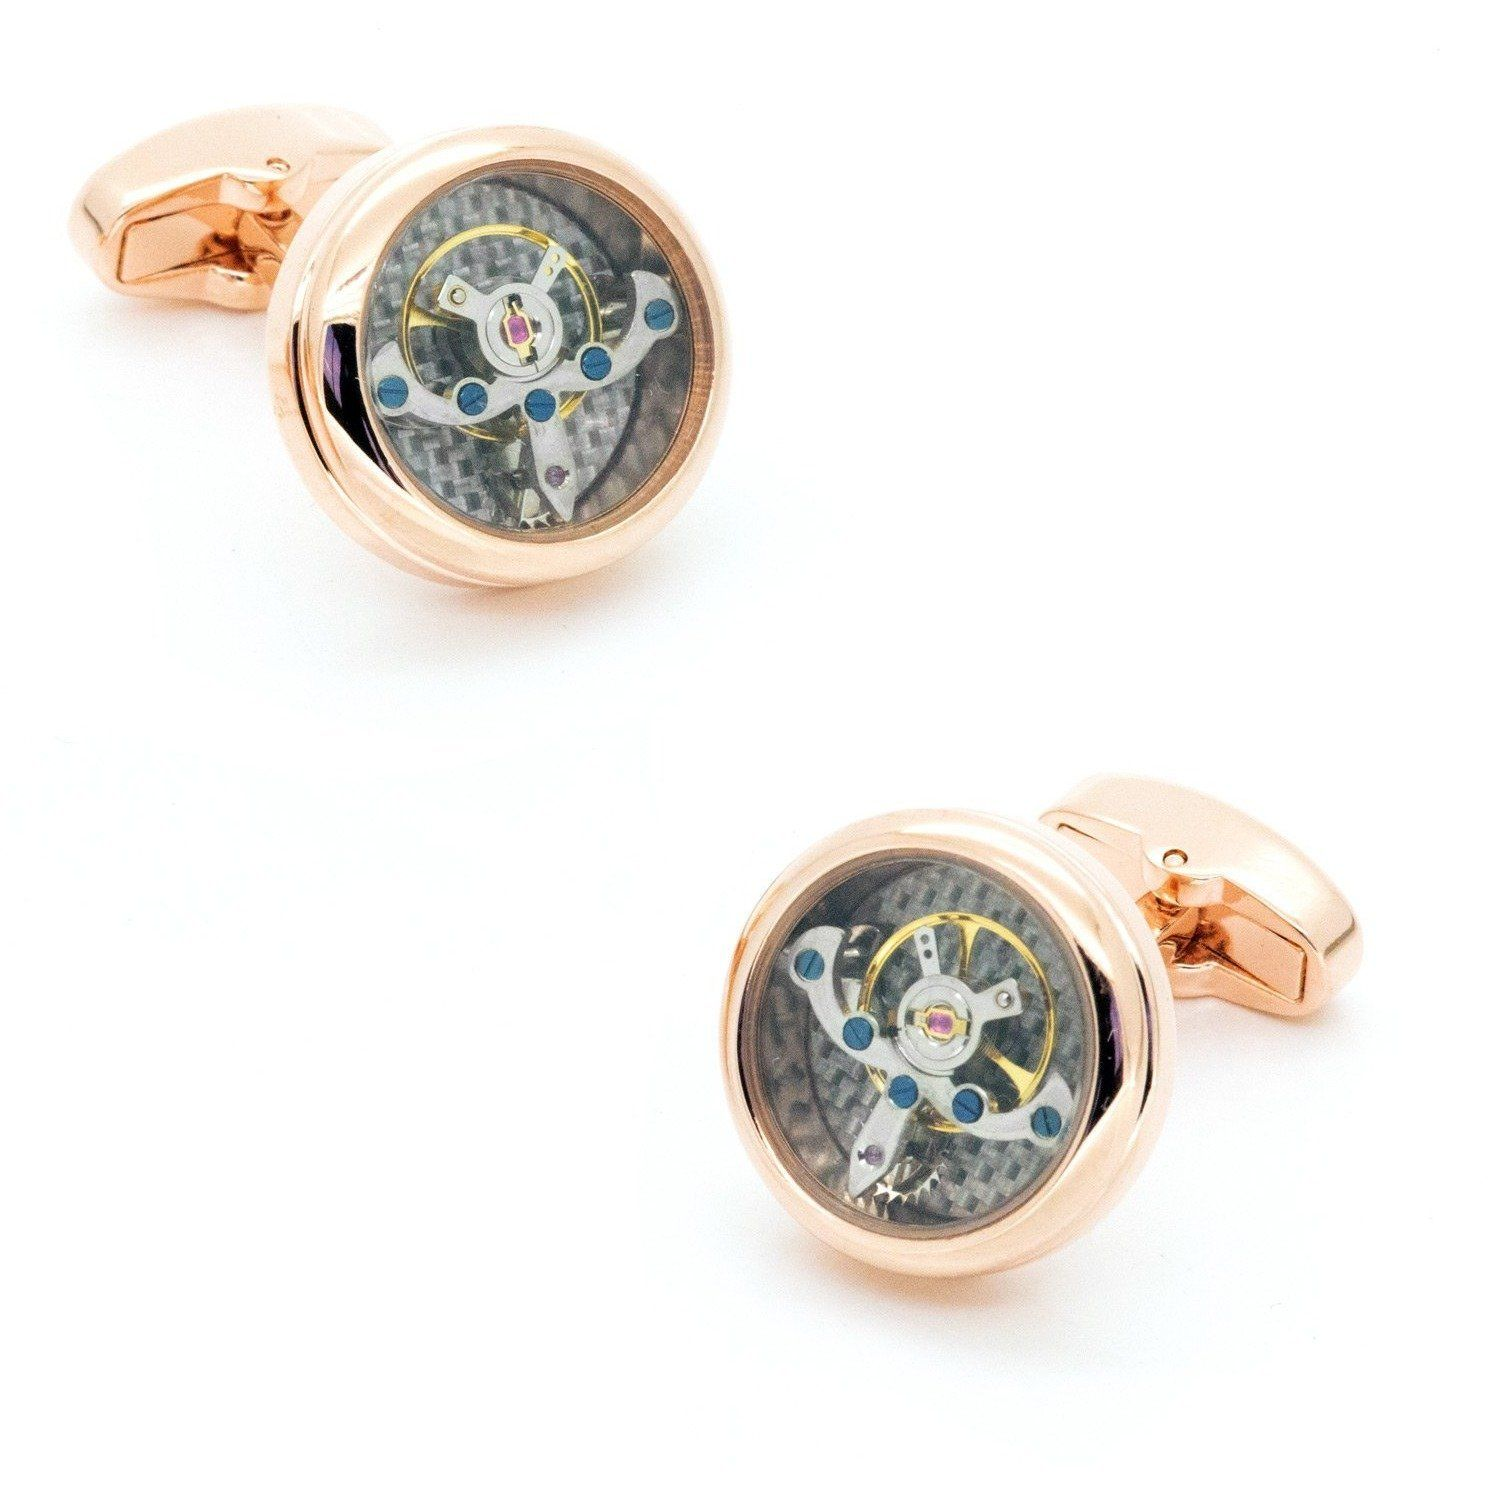 Tourbillon Watch Movement Cufflinks Rose Gold, Novelty Cufflinks, Cuffed.com.au, CL5581, $79.00